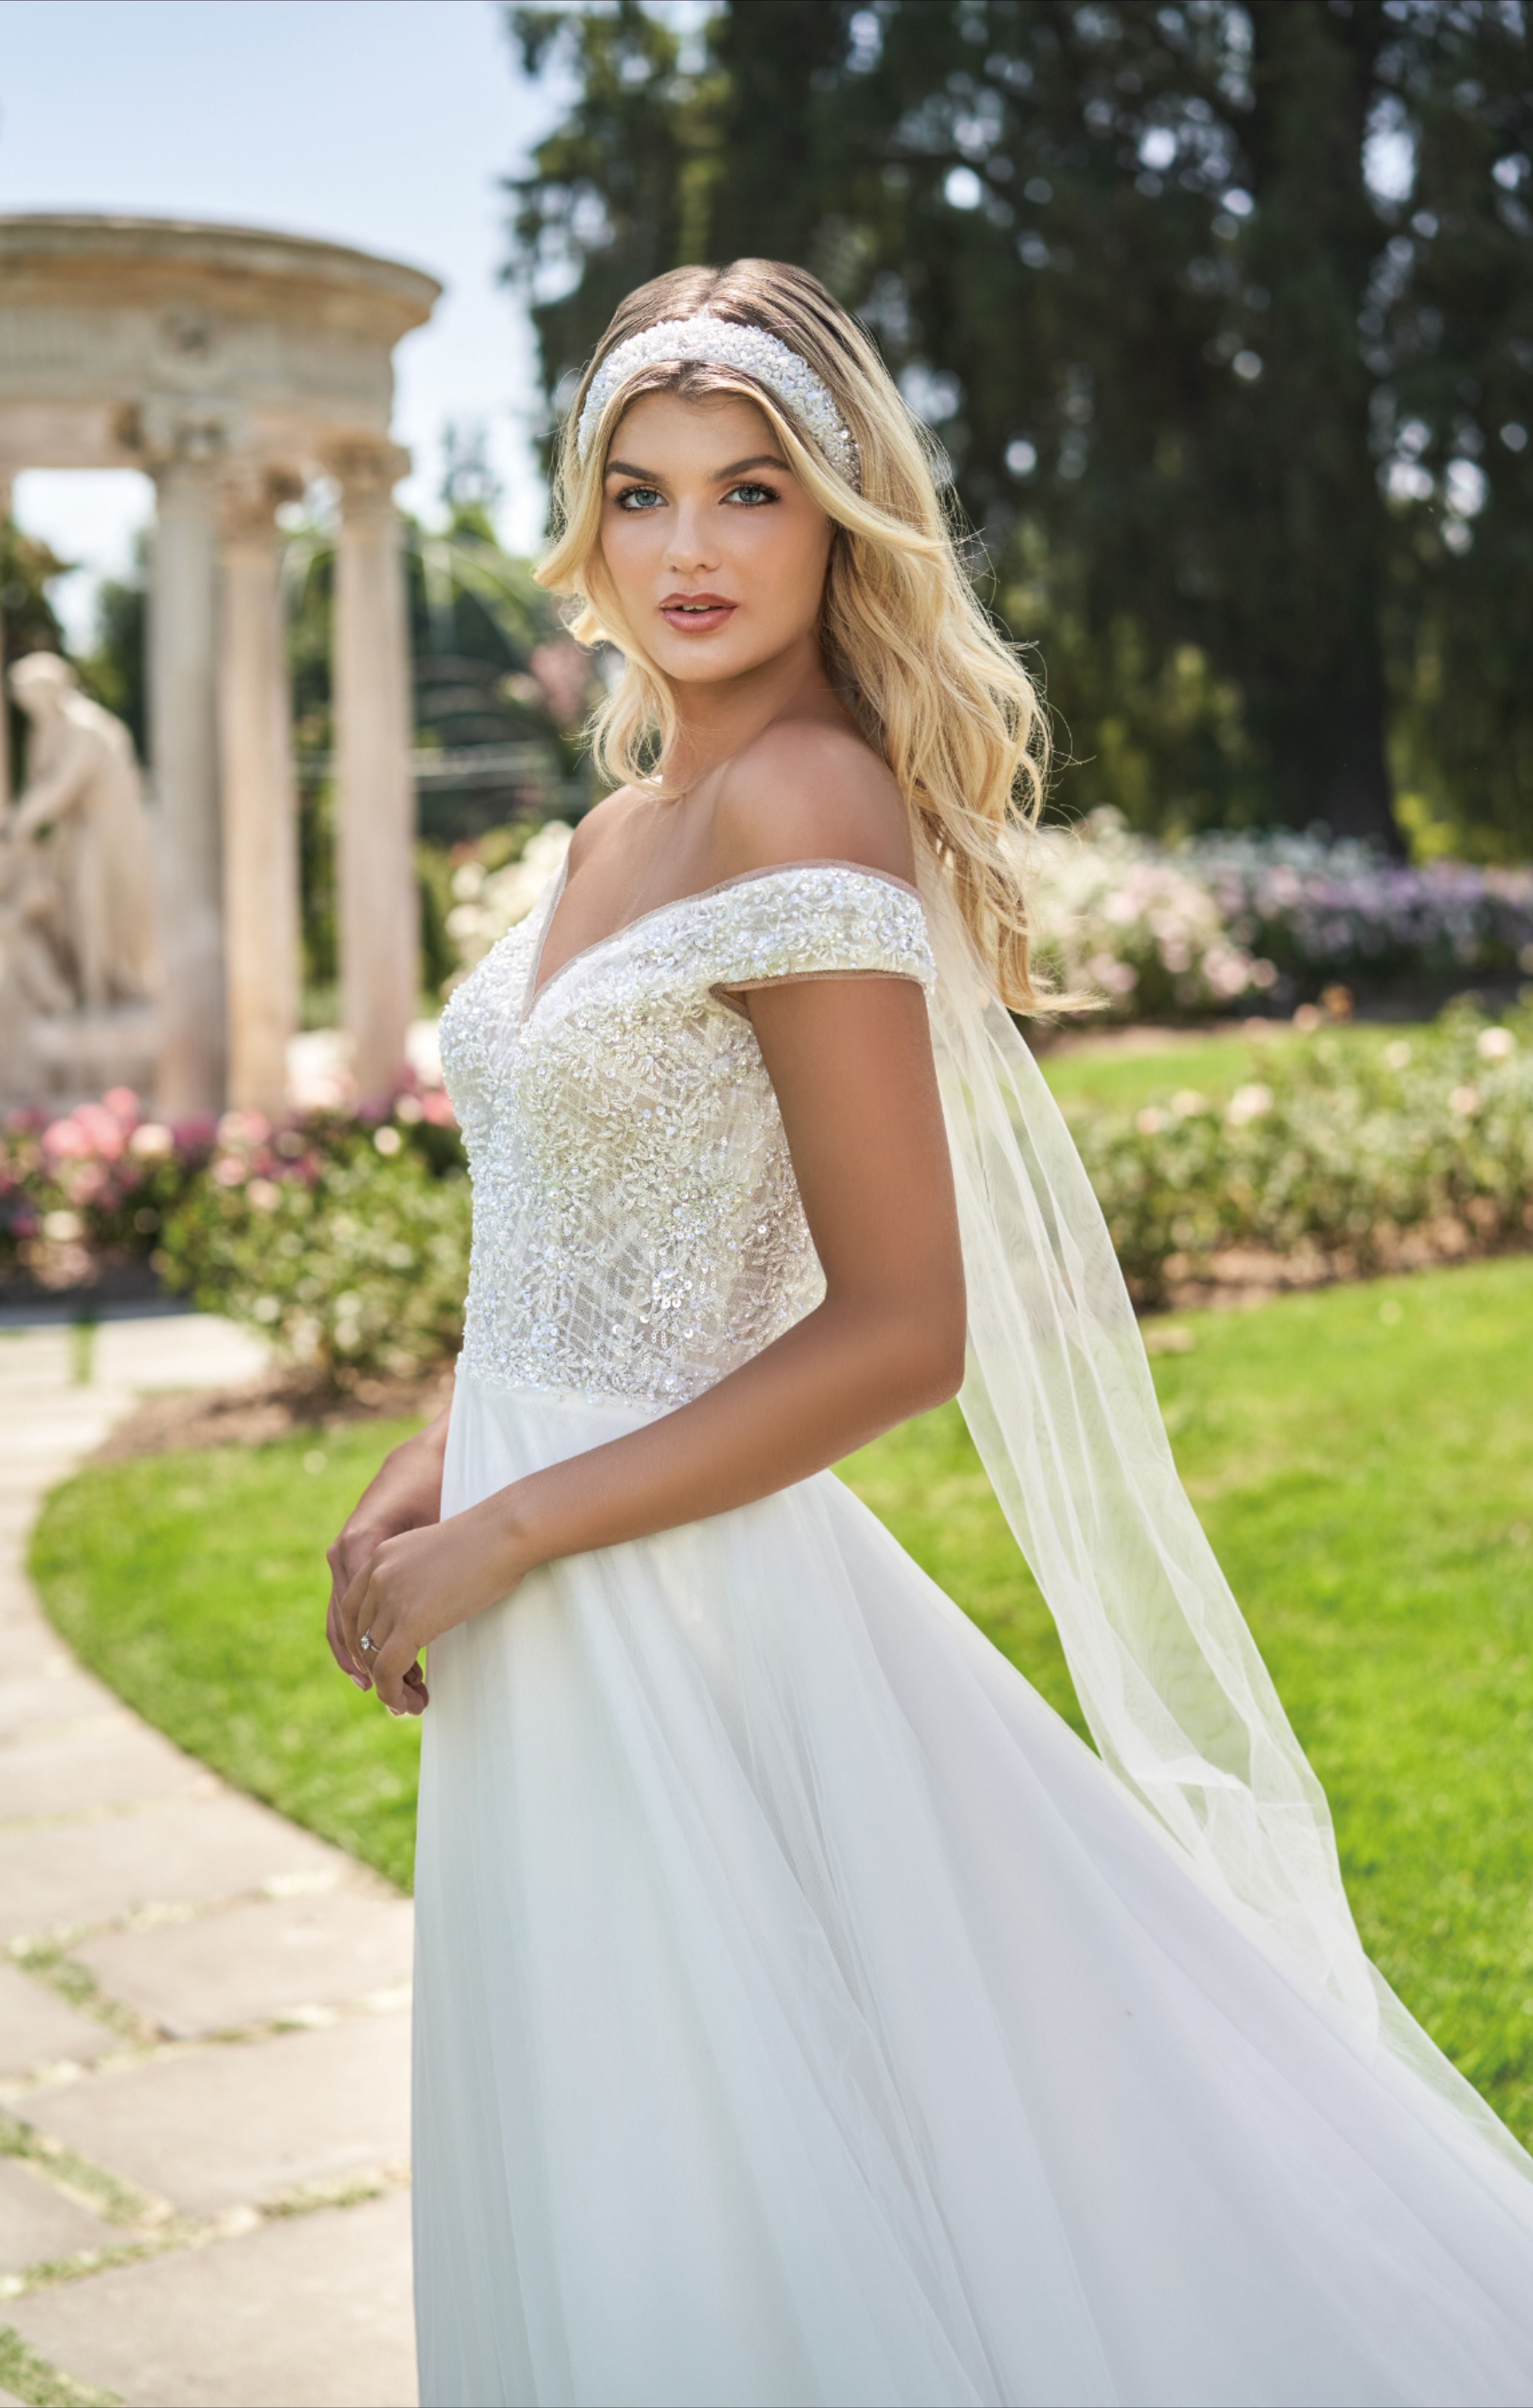 A true princess ball gown with an offtheshoulder